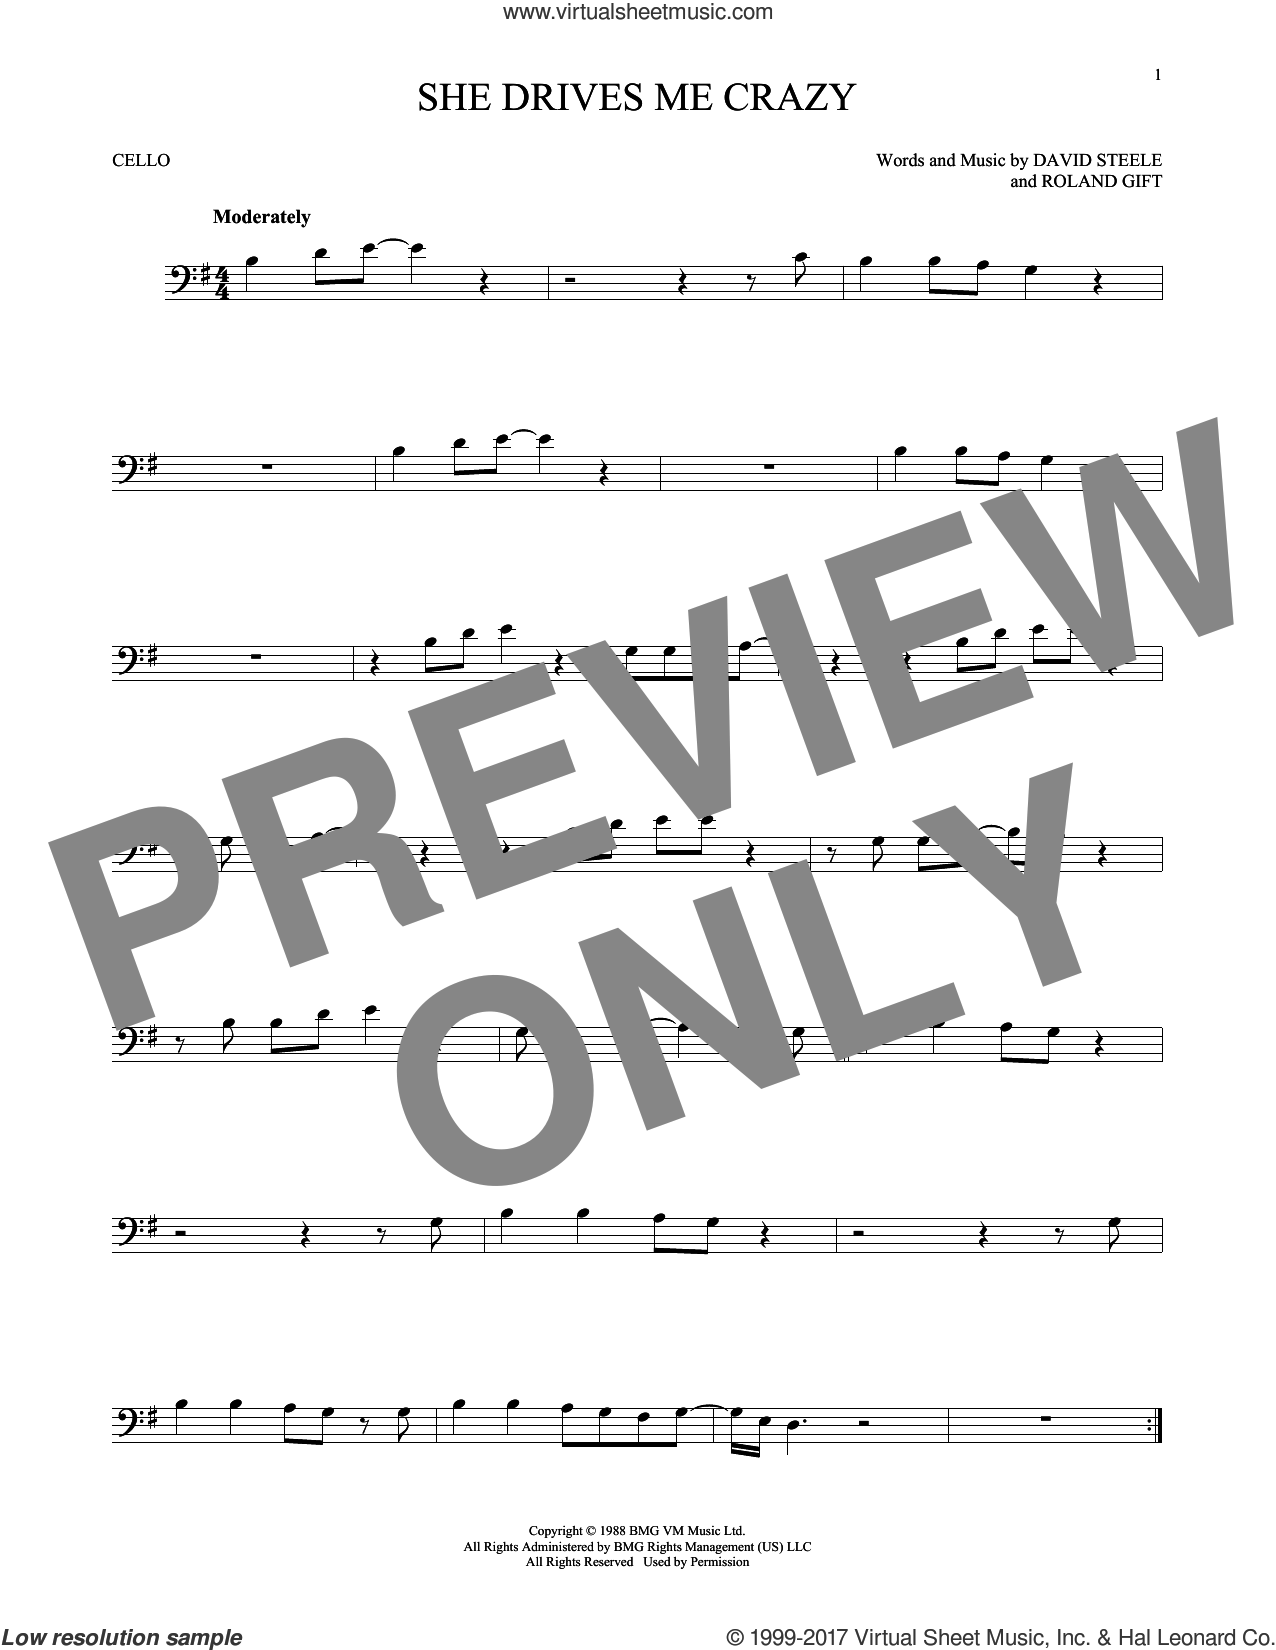 She Drives Me Crazy sheet music for cello solo by Fine Young Cannibals, David Steele and Roland Gift, intermediate skill level